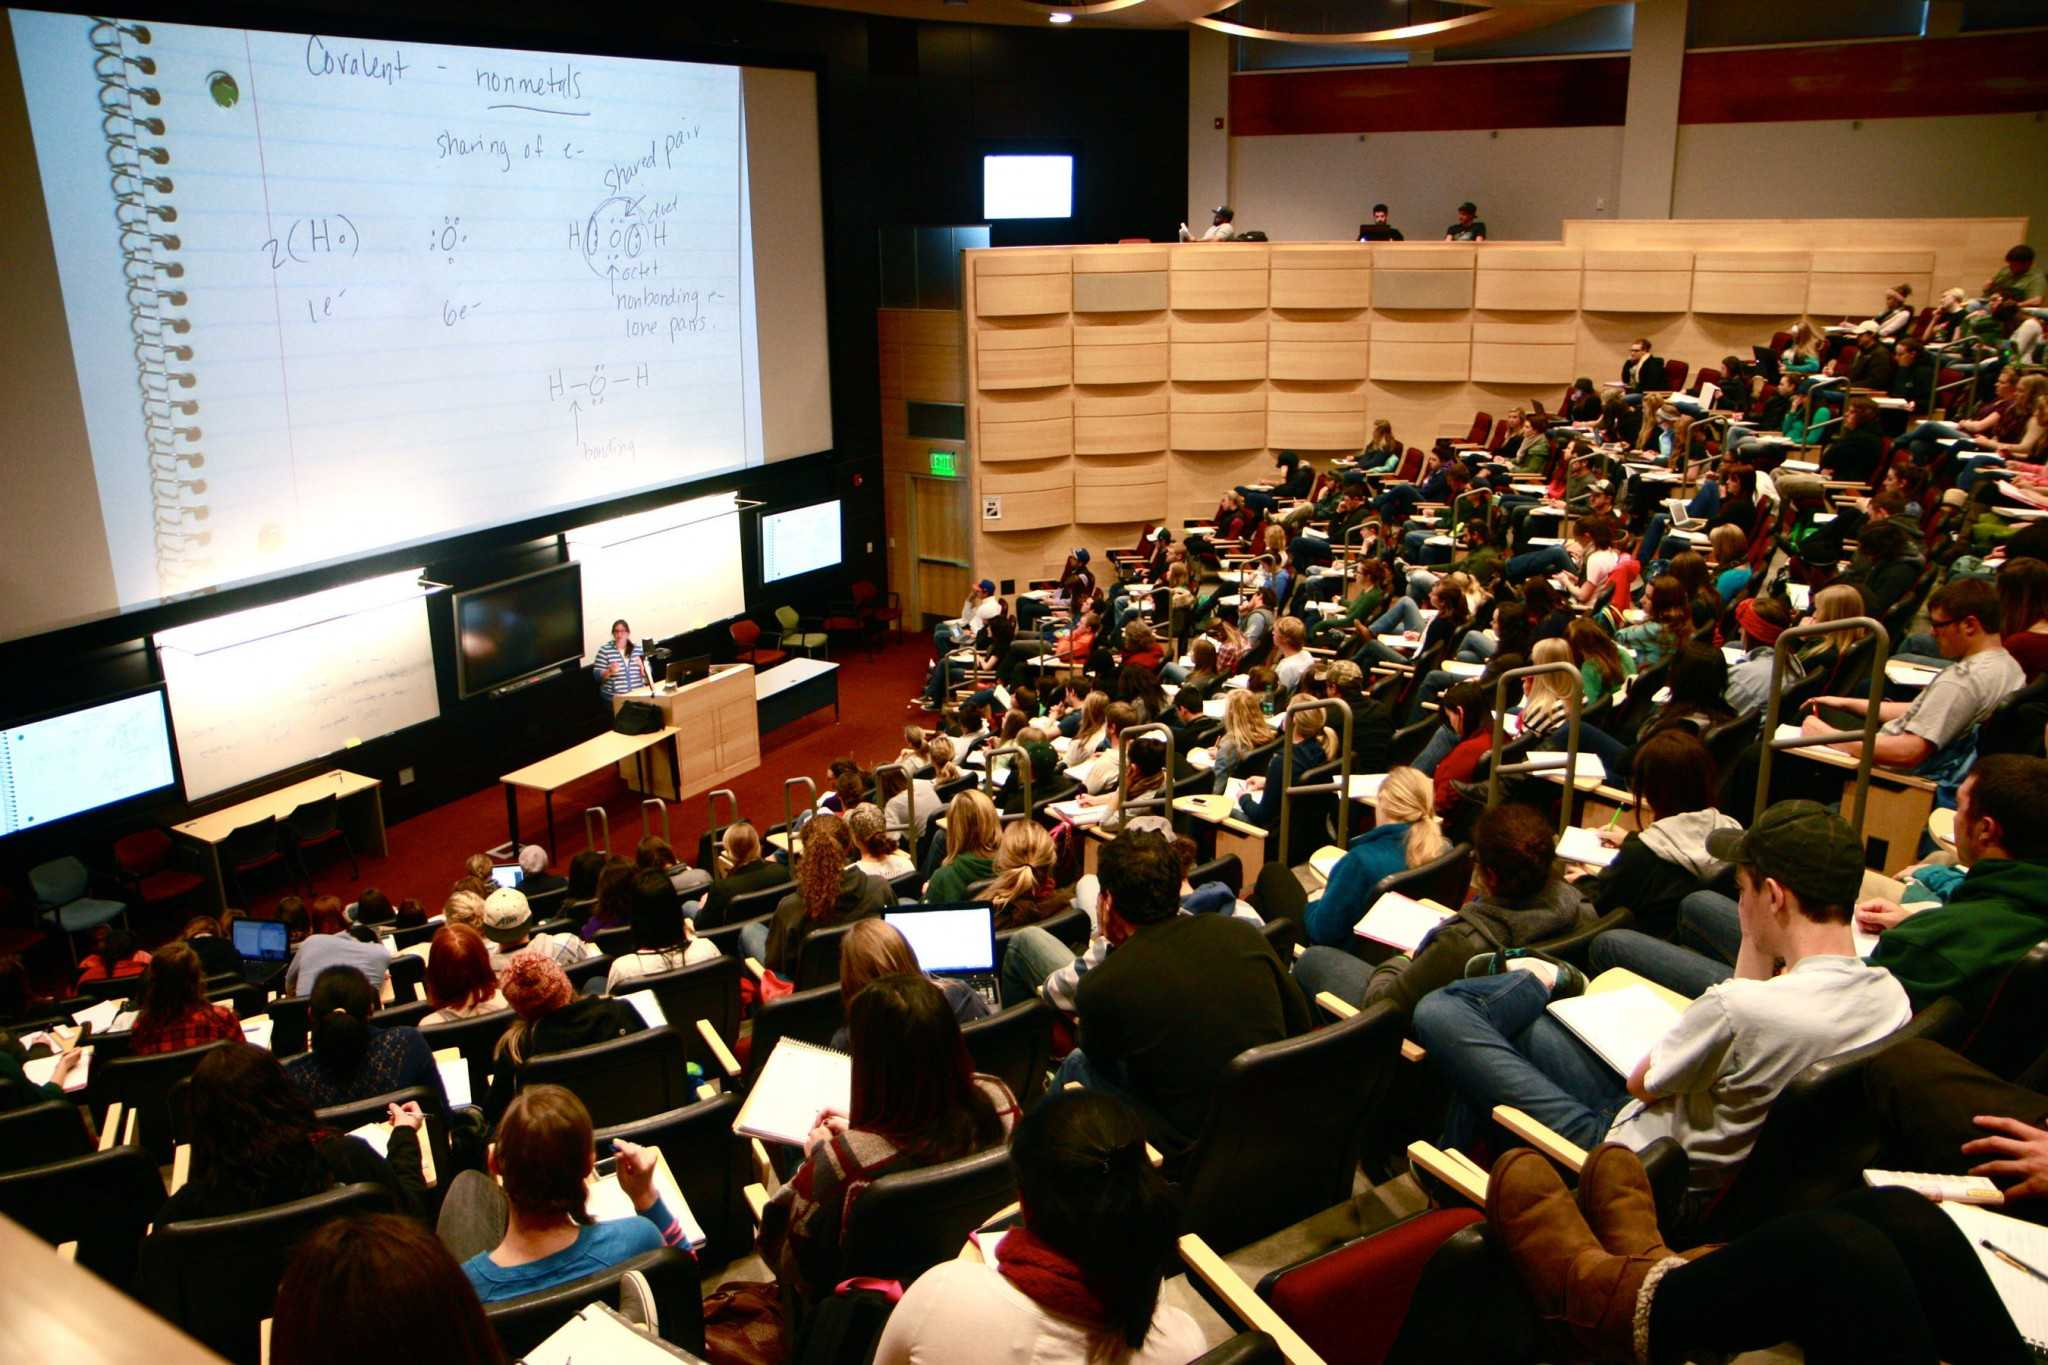 A 400 seat lecture room in Behavioral Sciences Building is packed full with mostly Freshman students enrolled in Chemistry 107.